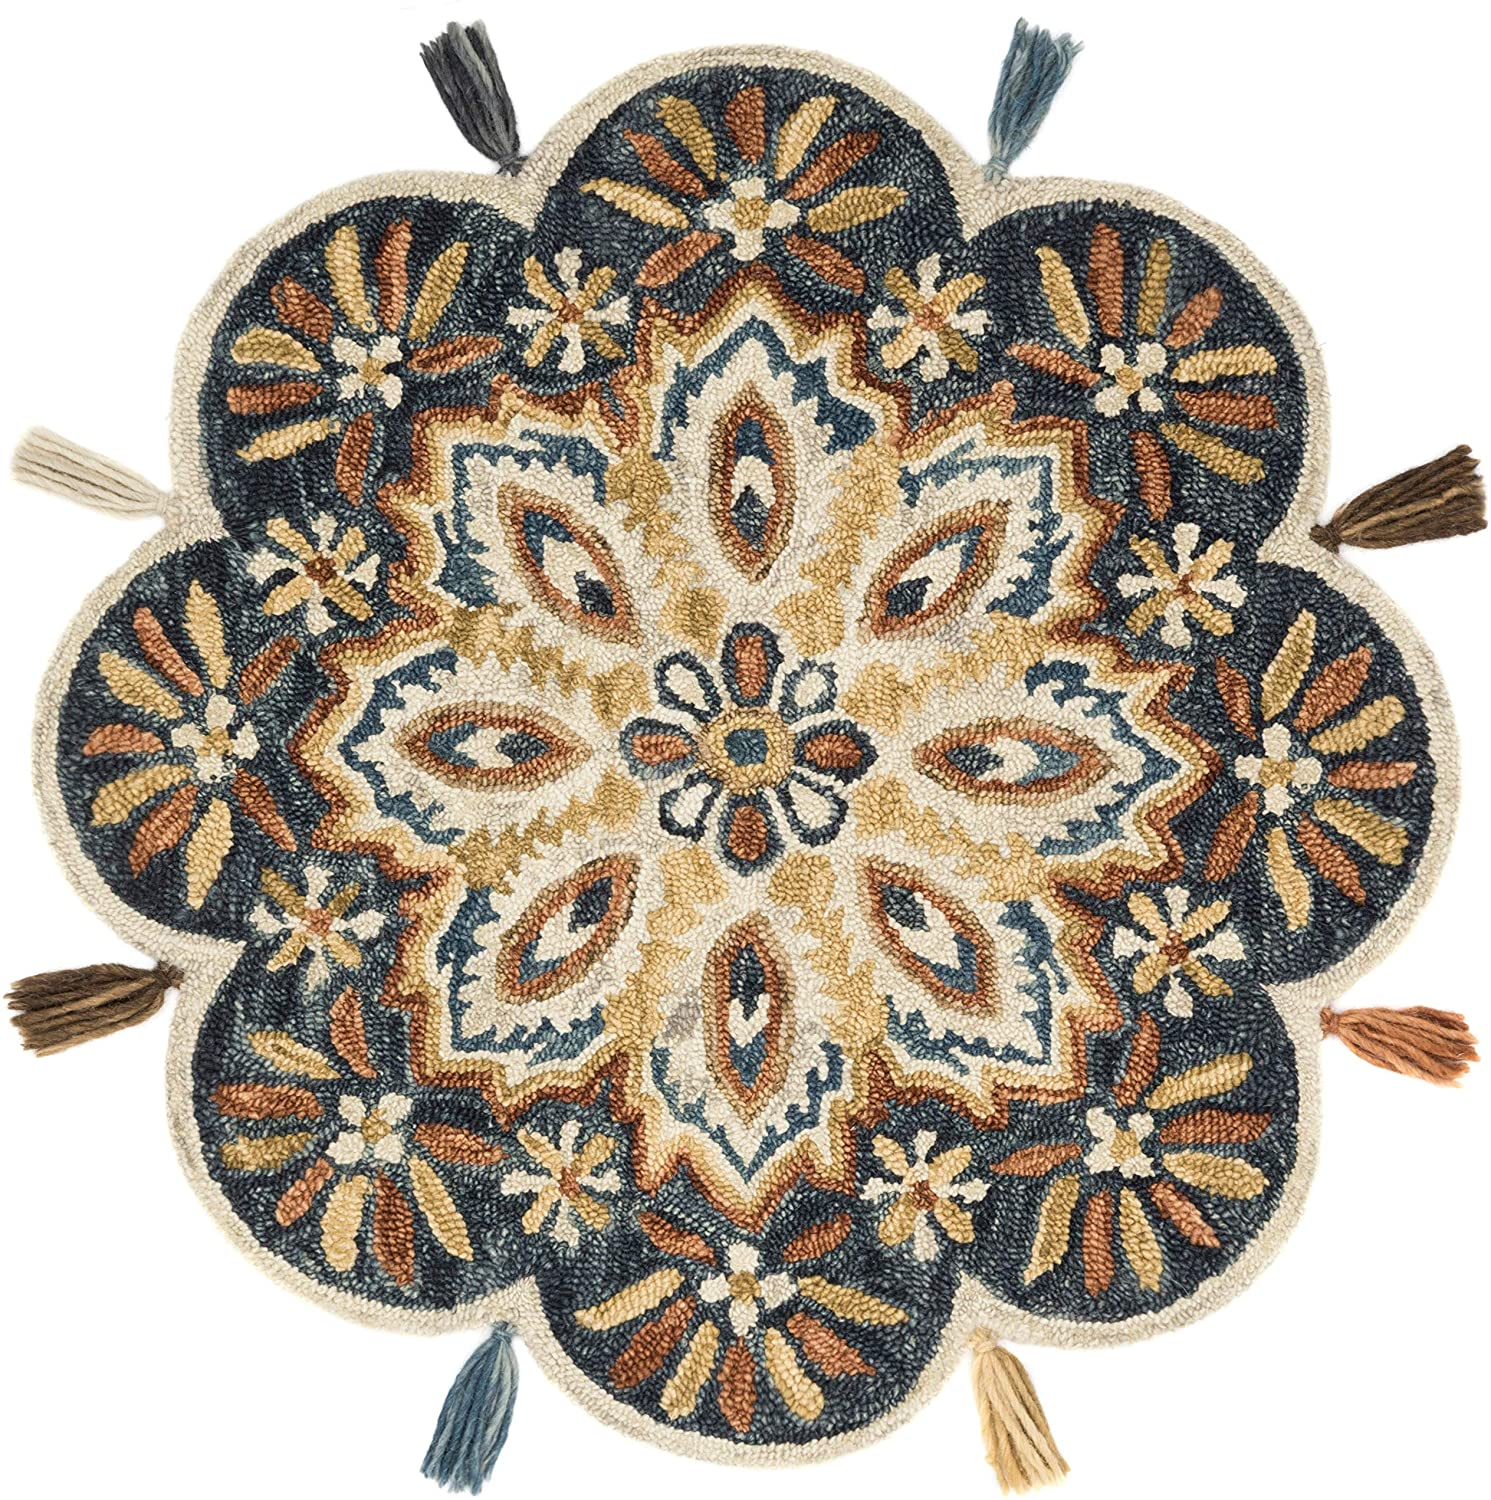 Hand Hooked Charcoal/Rust Floral Round Wool Area Rug 3' X Grey Botanical Farmhouse Transitional Contains Latex